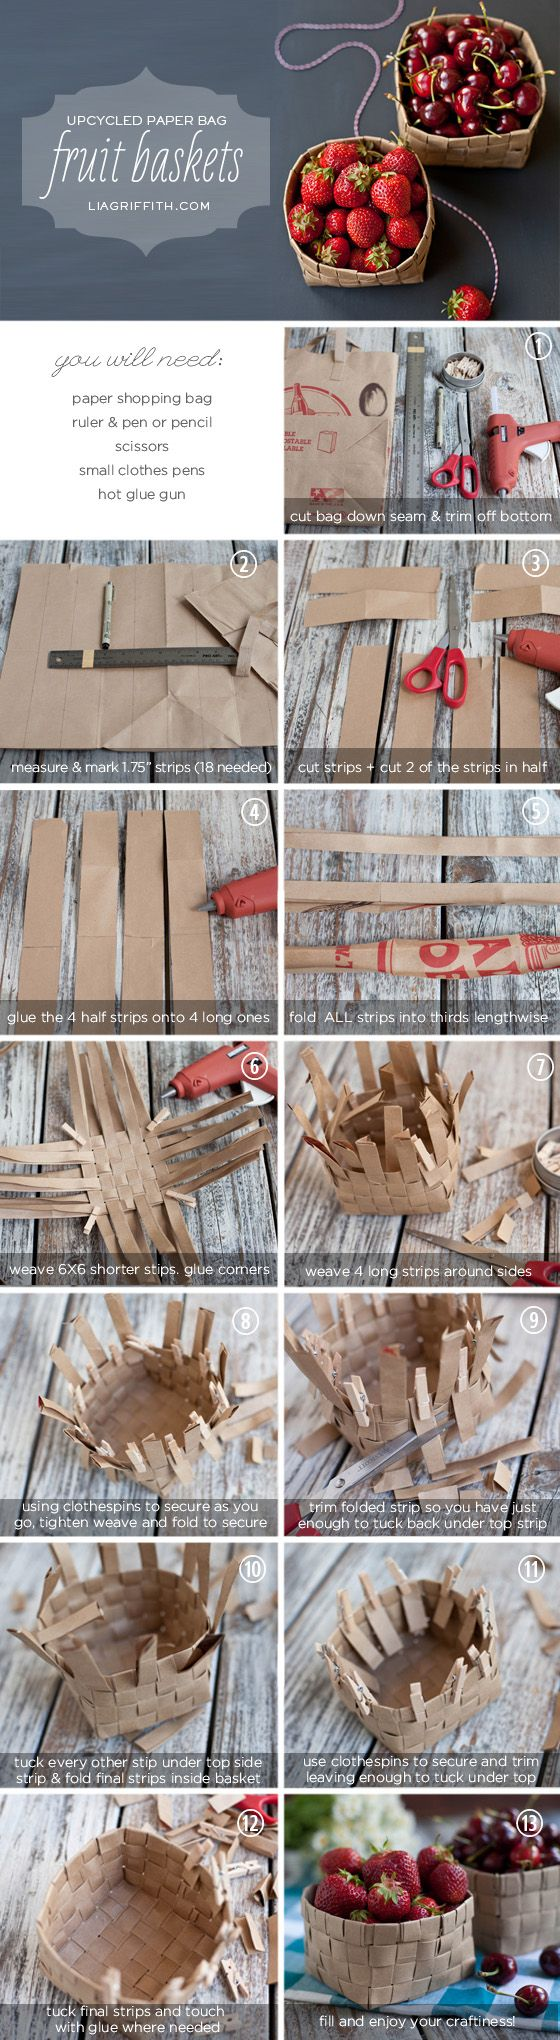 Fruit Basket Tutorial. I wonder if this would work with magazine strips....